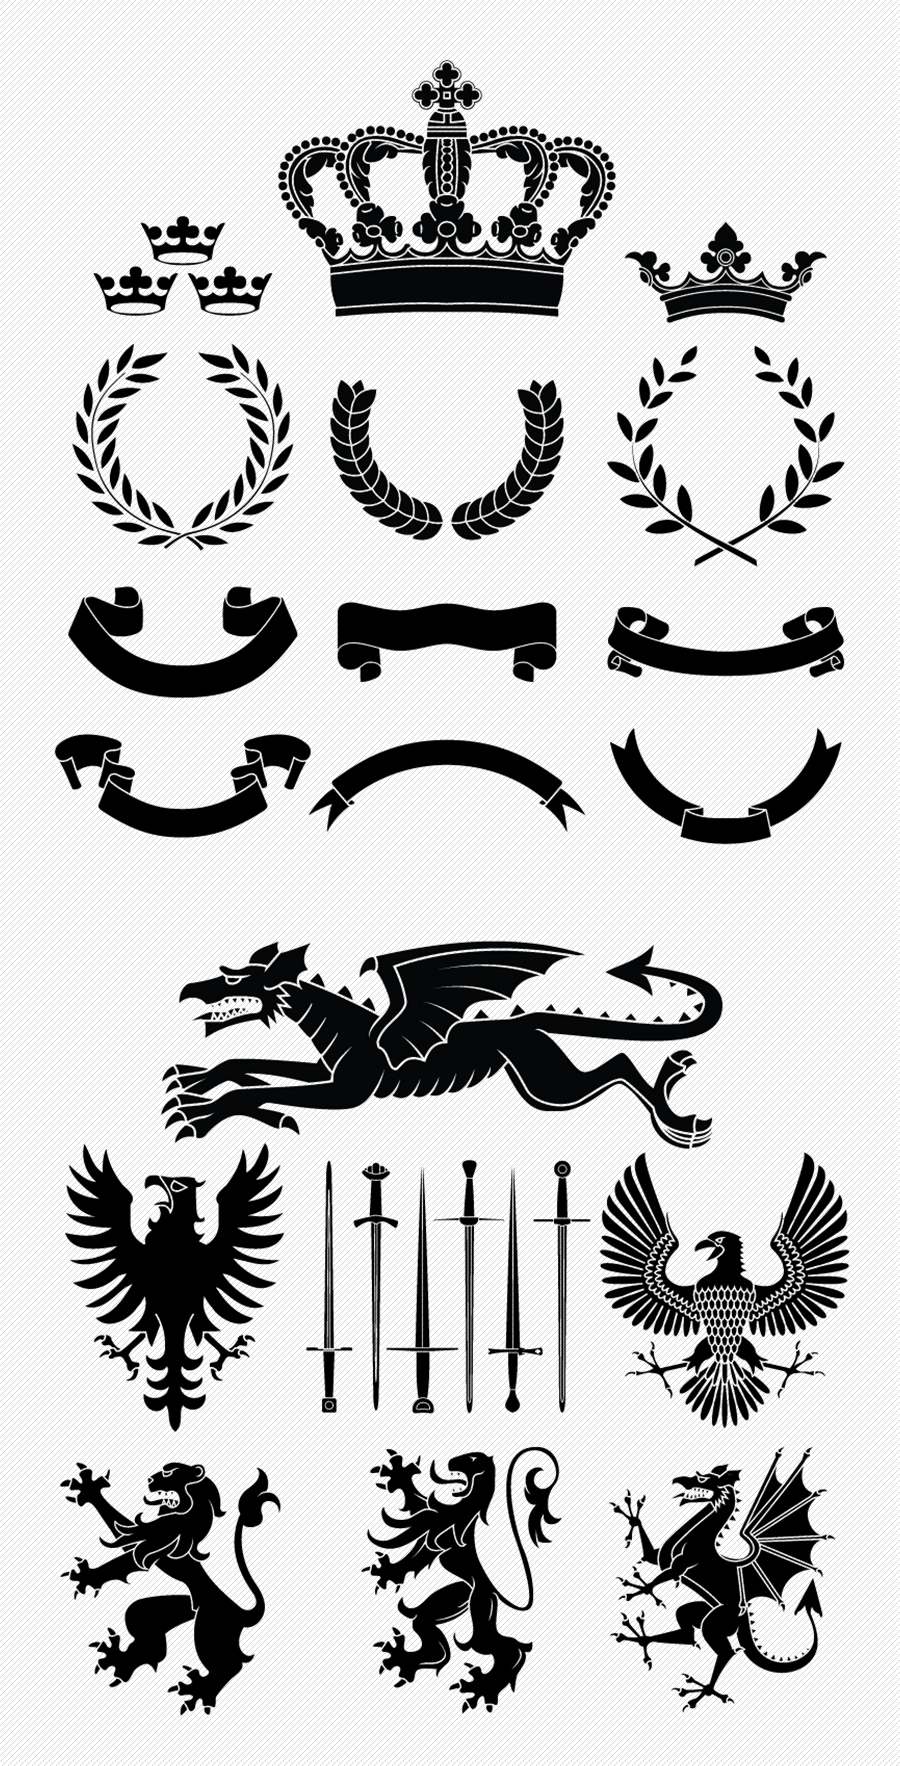 heraldry clipart download free - photo #43